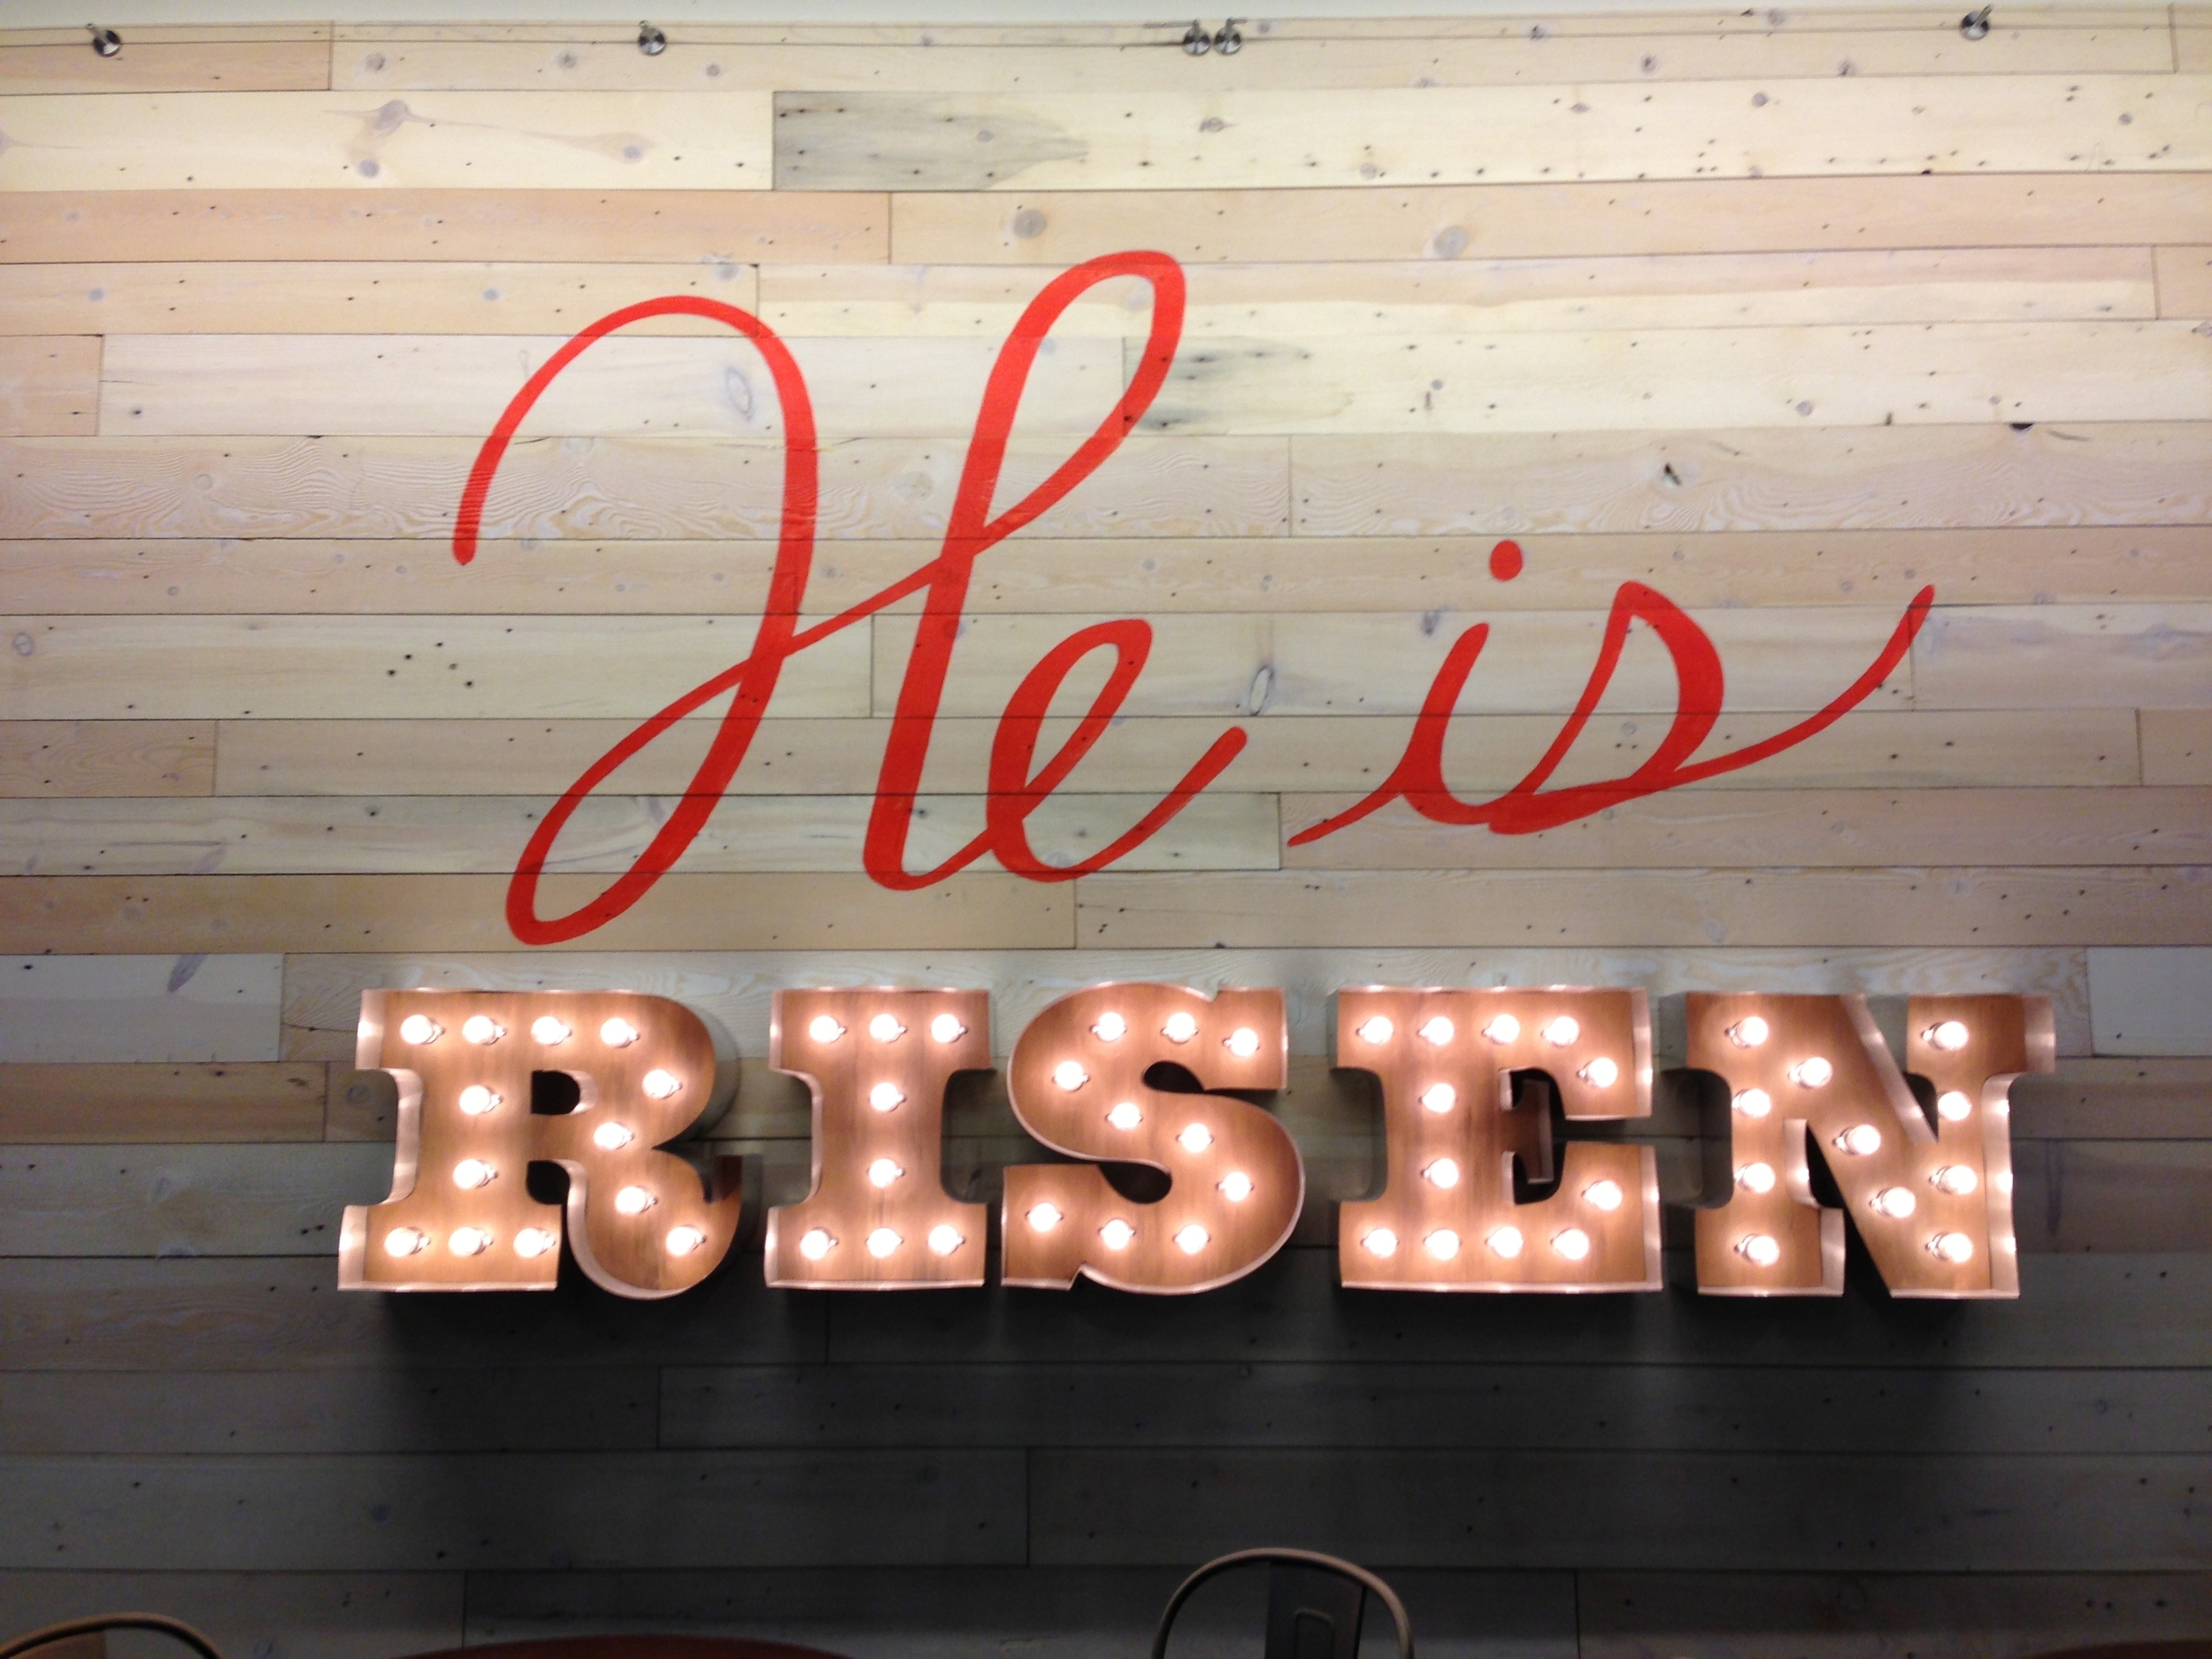 A celebration of the risen King